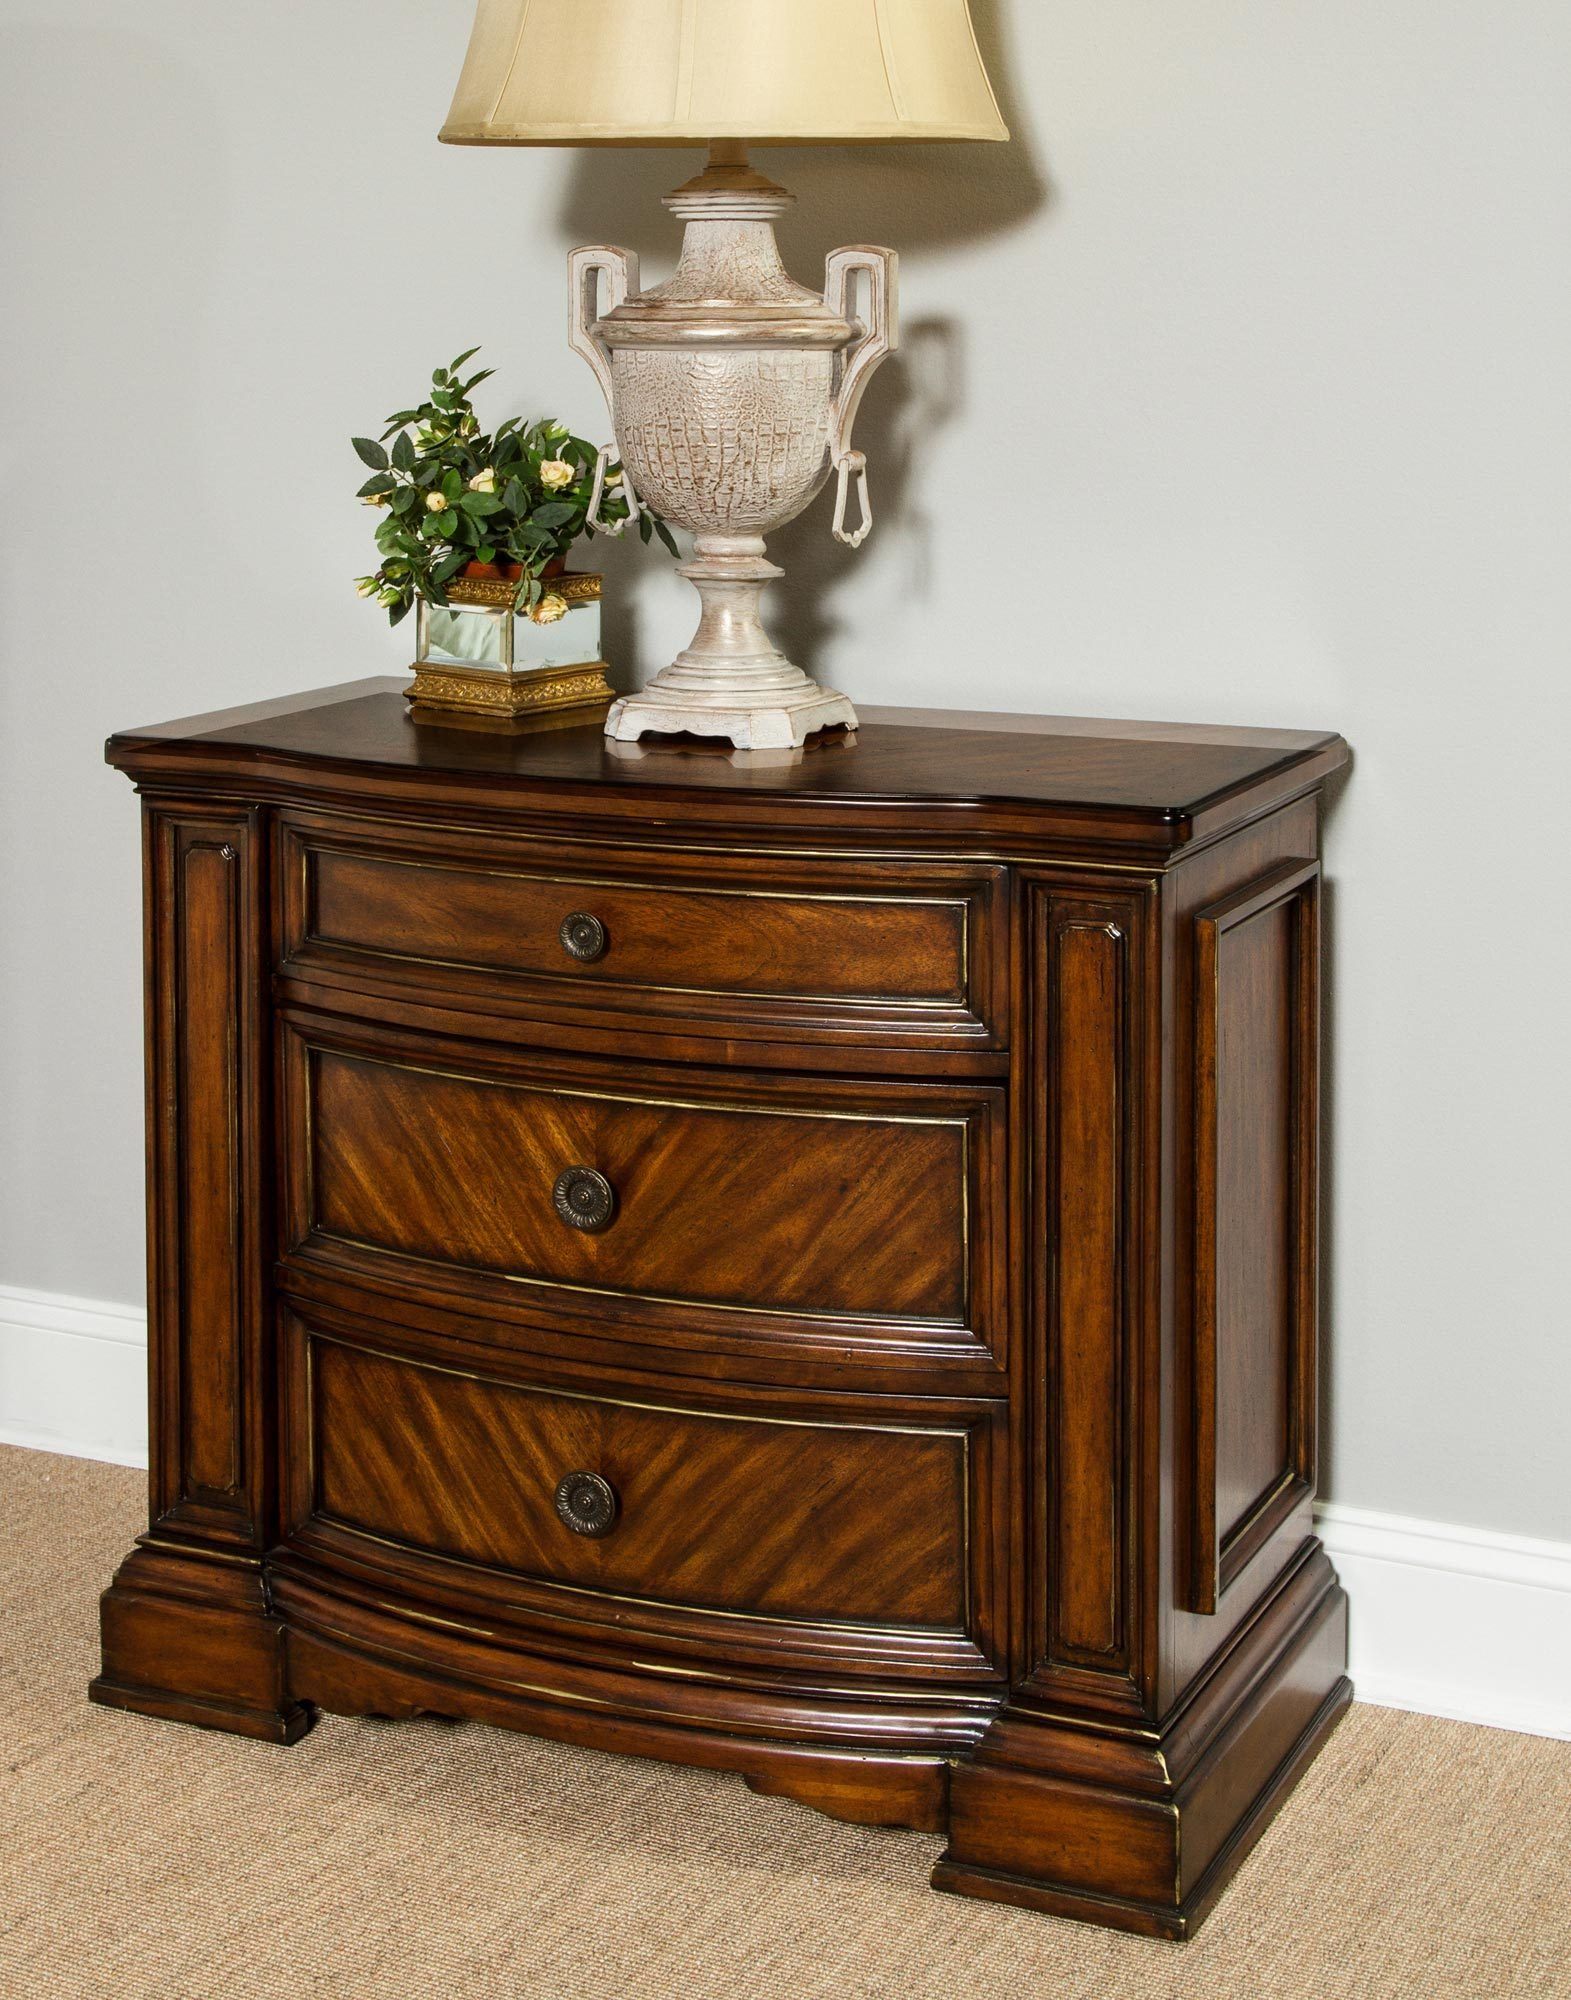 Devonshire Nightstand In Cherry Fairmont Designs Furniture